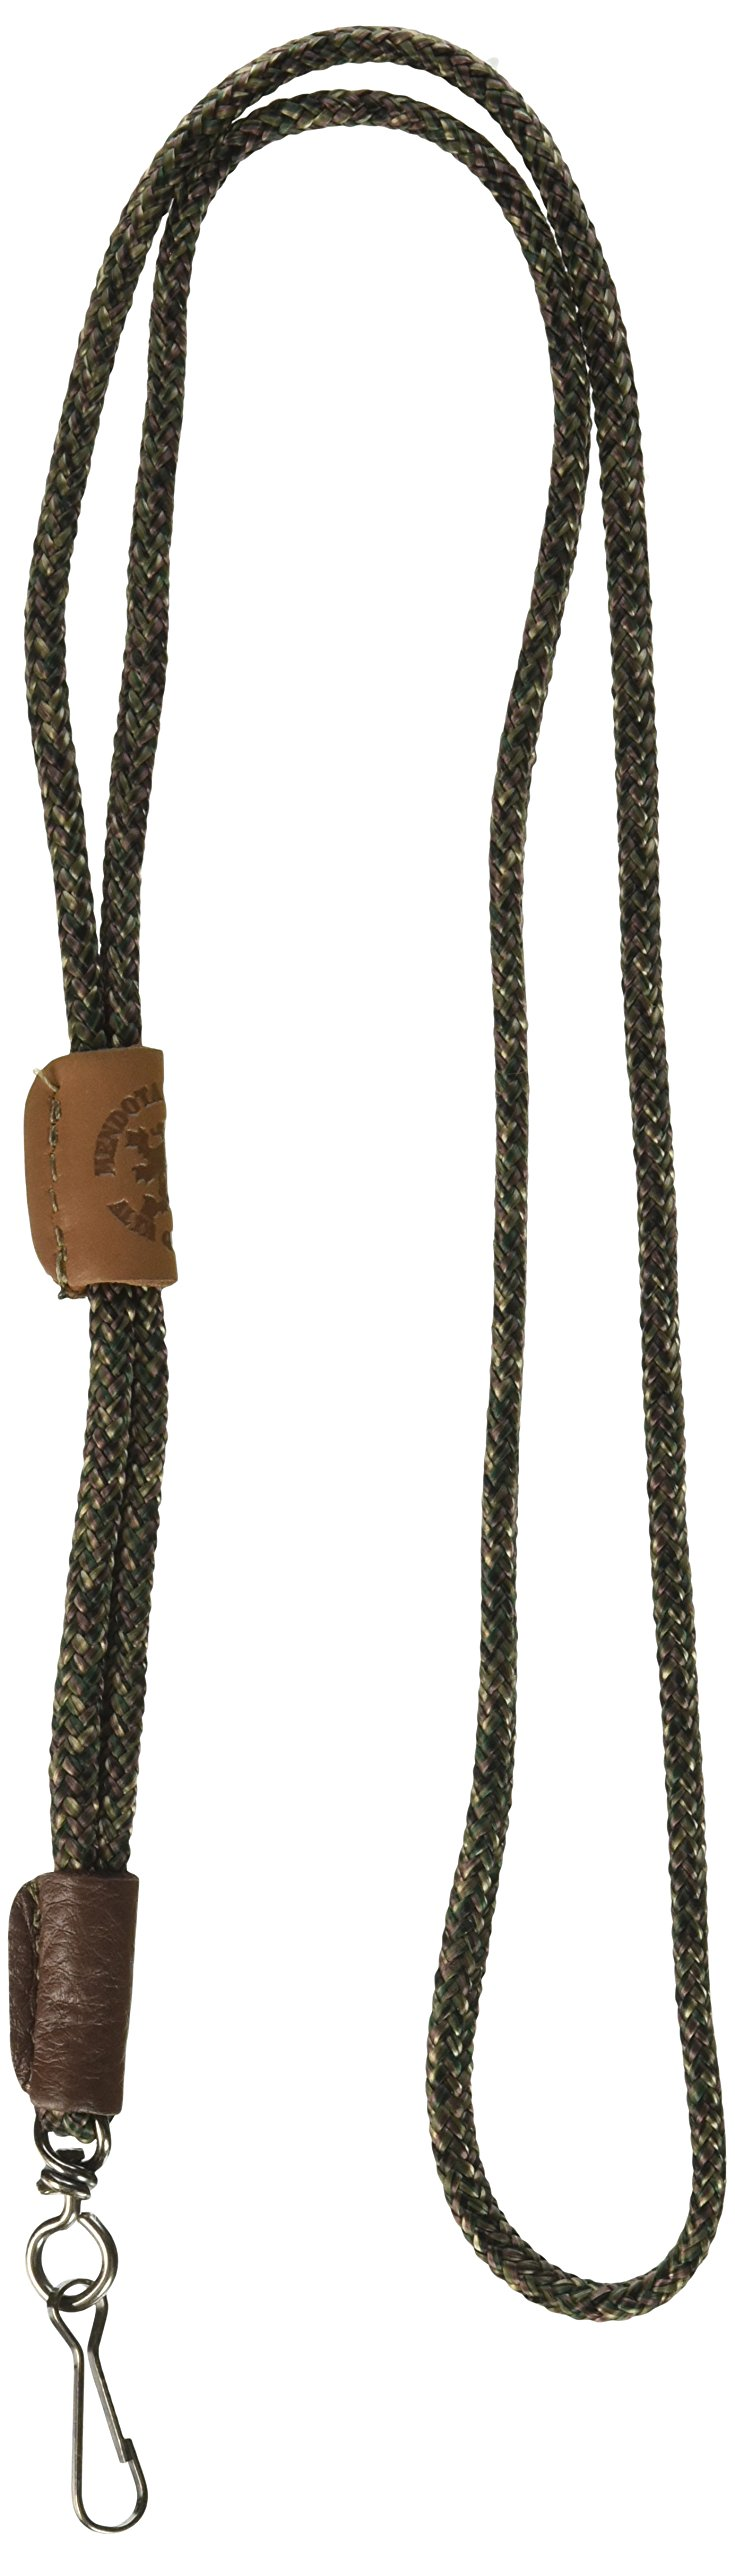 Mendota Pet Single Lanyard Whistle, 1/8 by 25-Inch, Camo by Mendota Products